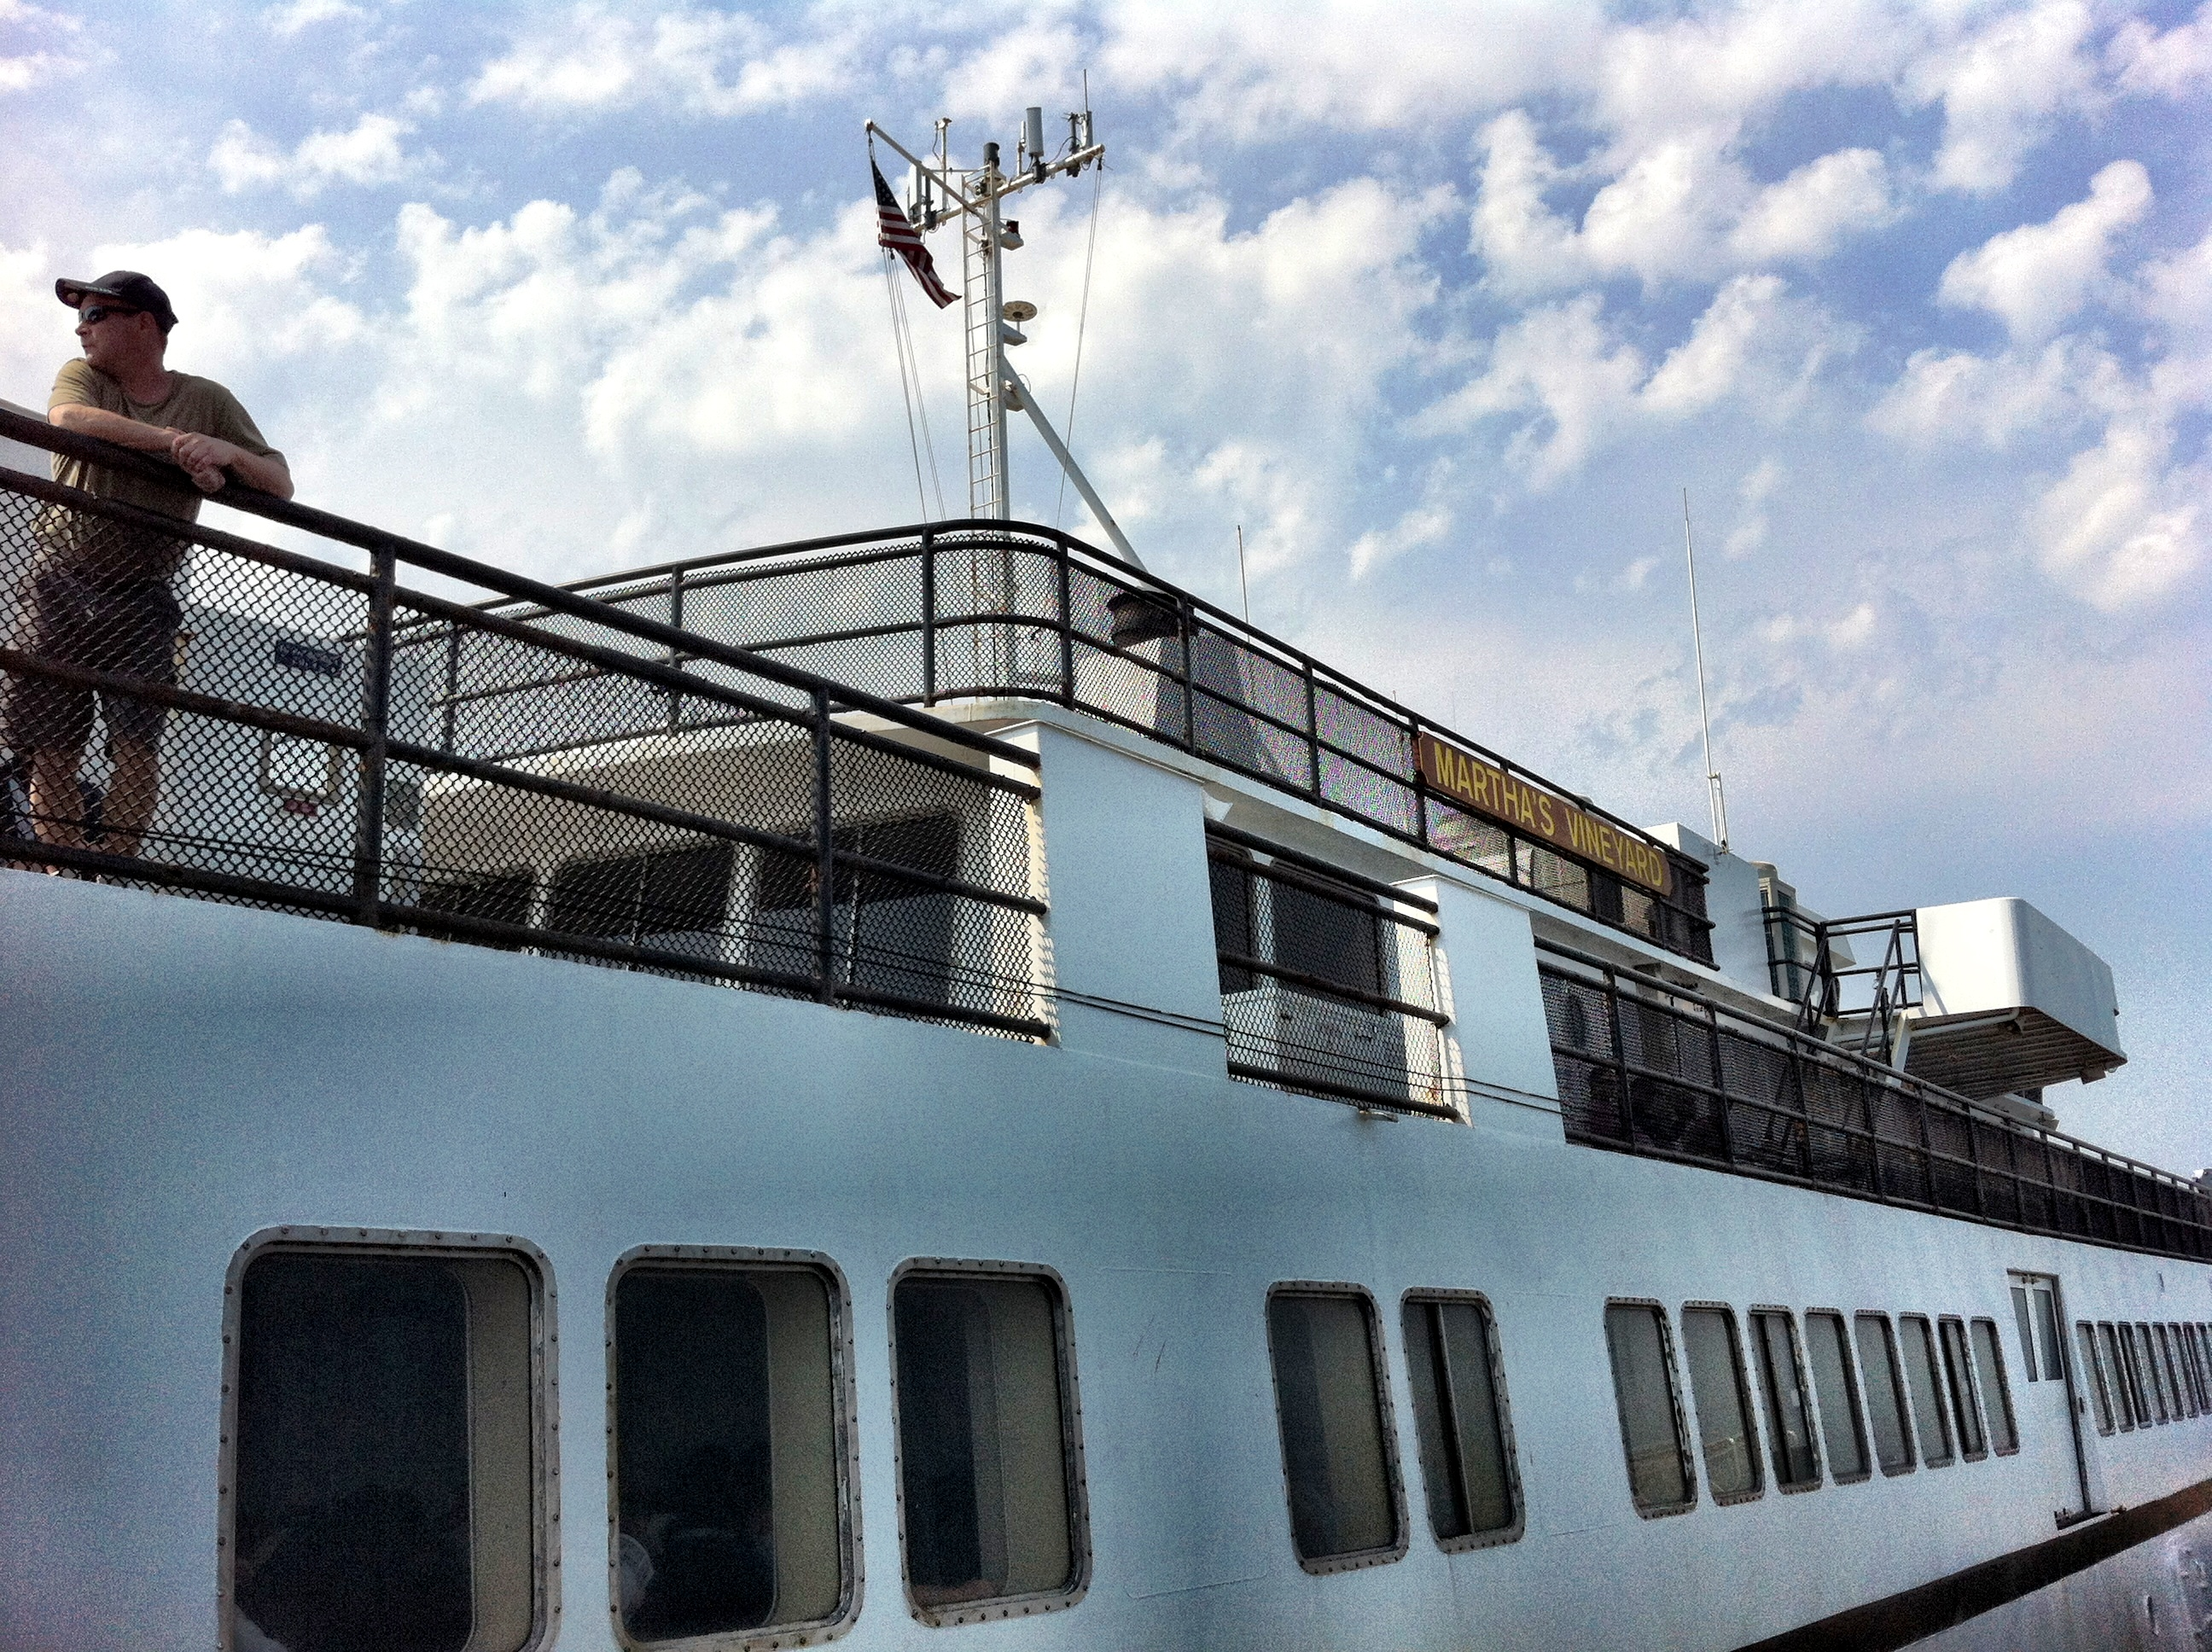 Ferries leave about hourly all summer long between Martha's Vineyard and Woods Hole.